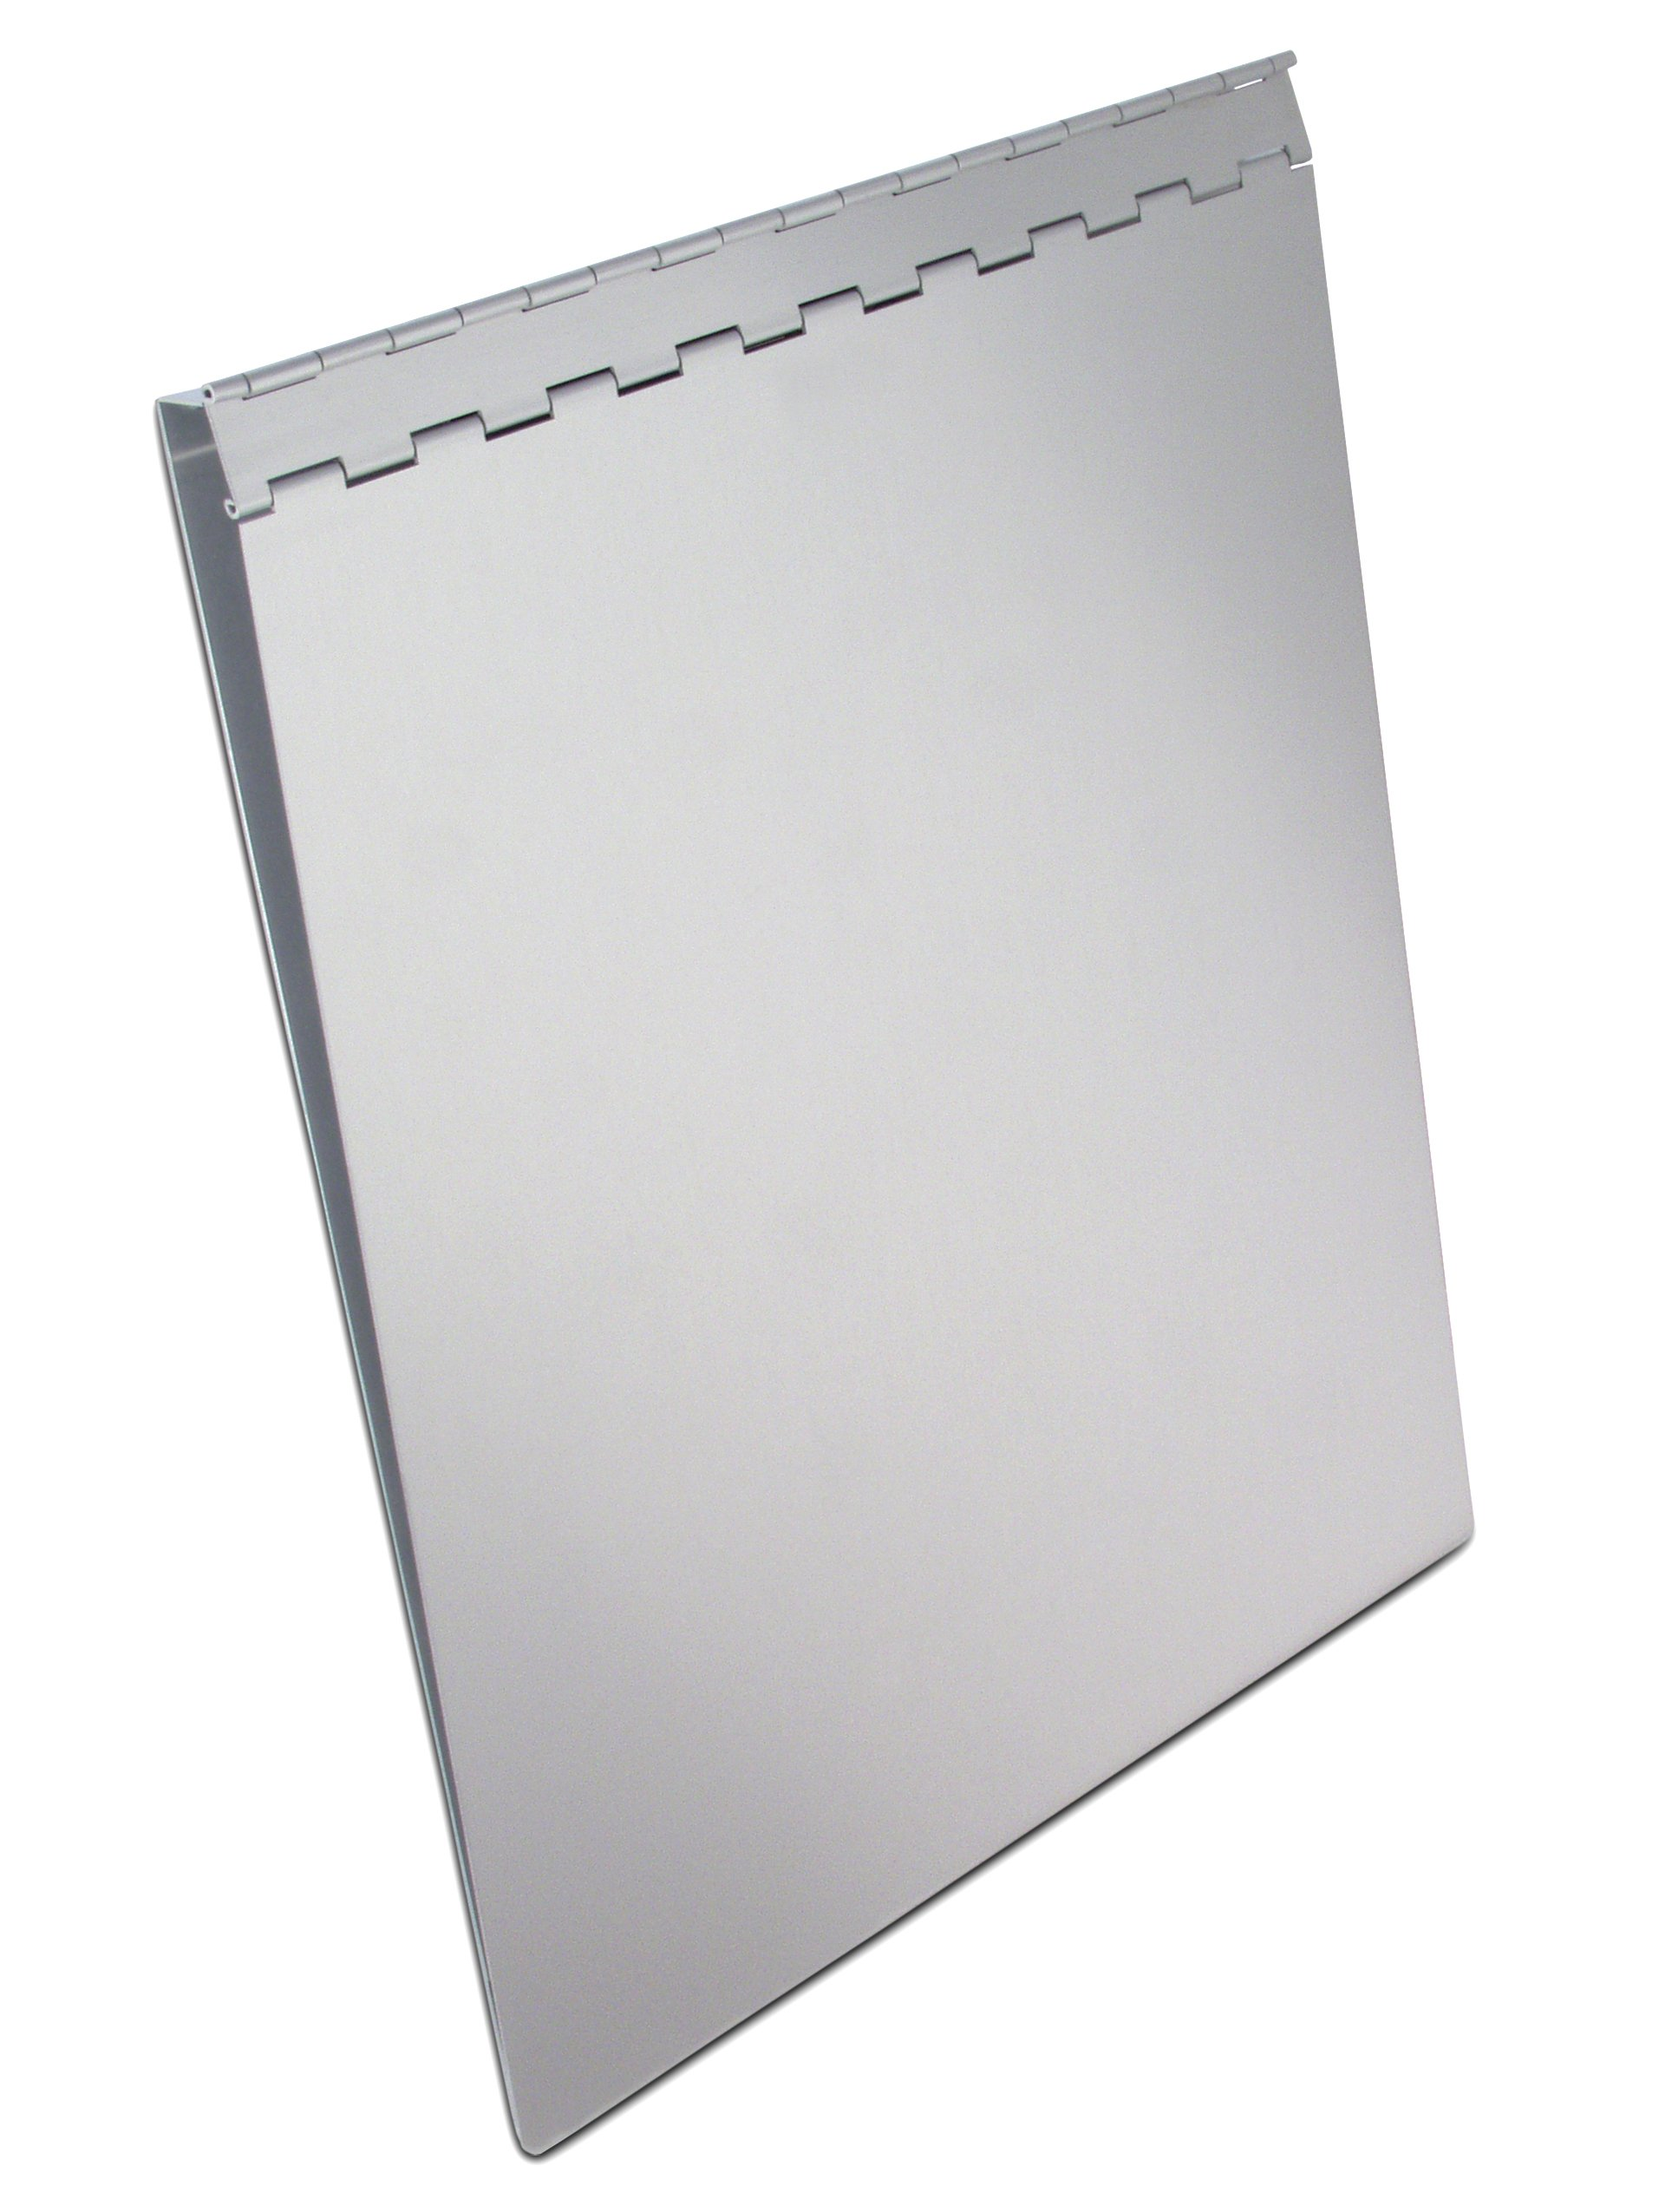 Saunders Recycled Aluminum Sheet Holder with Privacy Cover, Letter Size, 8.5 x 12-Inches, 1 Sheet Holder (13031)